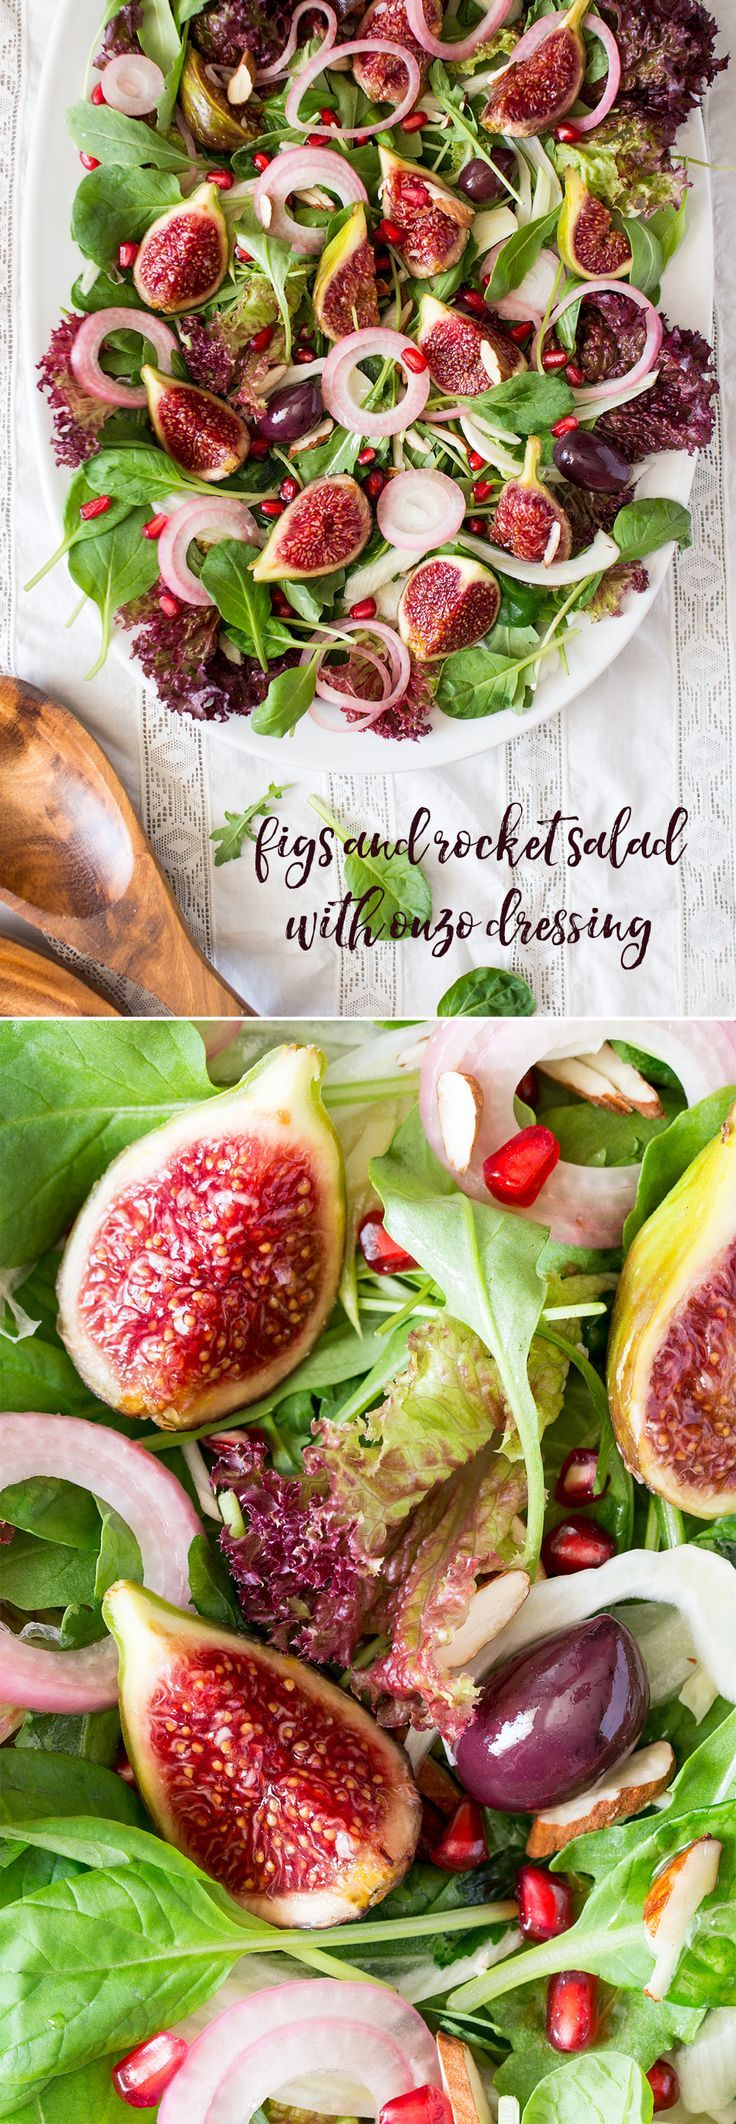 50015 best vegan dinners yum images on pinterest vegan fig and rocket salad with ouzo dressing forumfinder Images